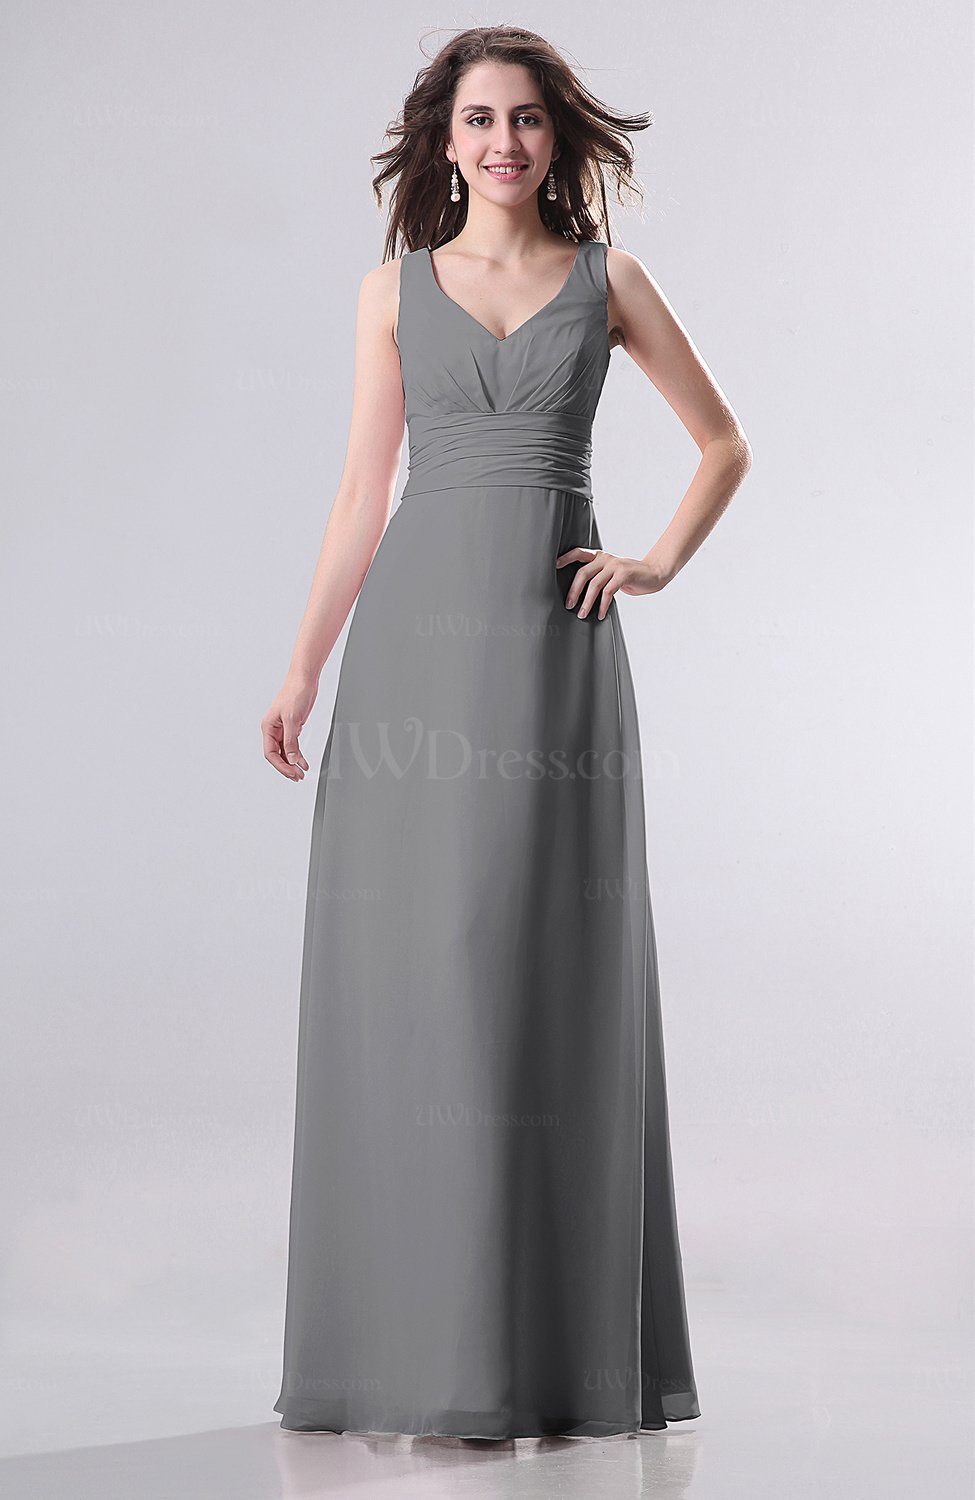 Grey Dress Wedding Guest Of Grey Simple Empire Sleeveless Zip Up Ruching Wedding Guest